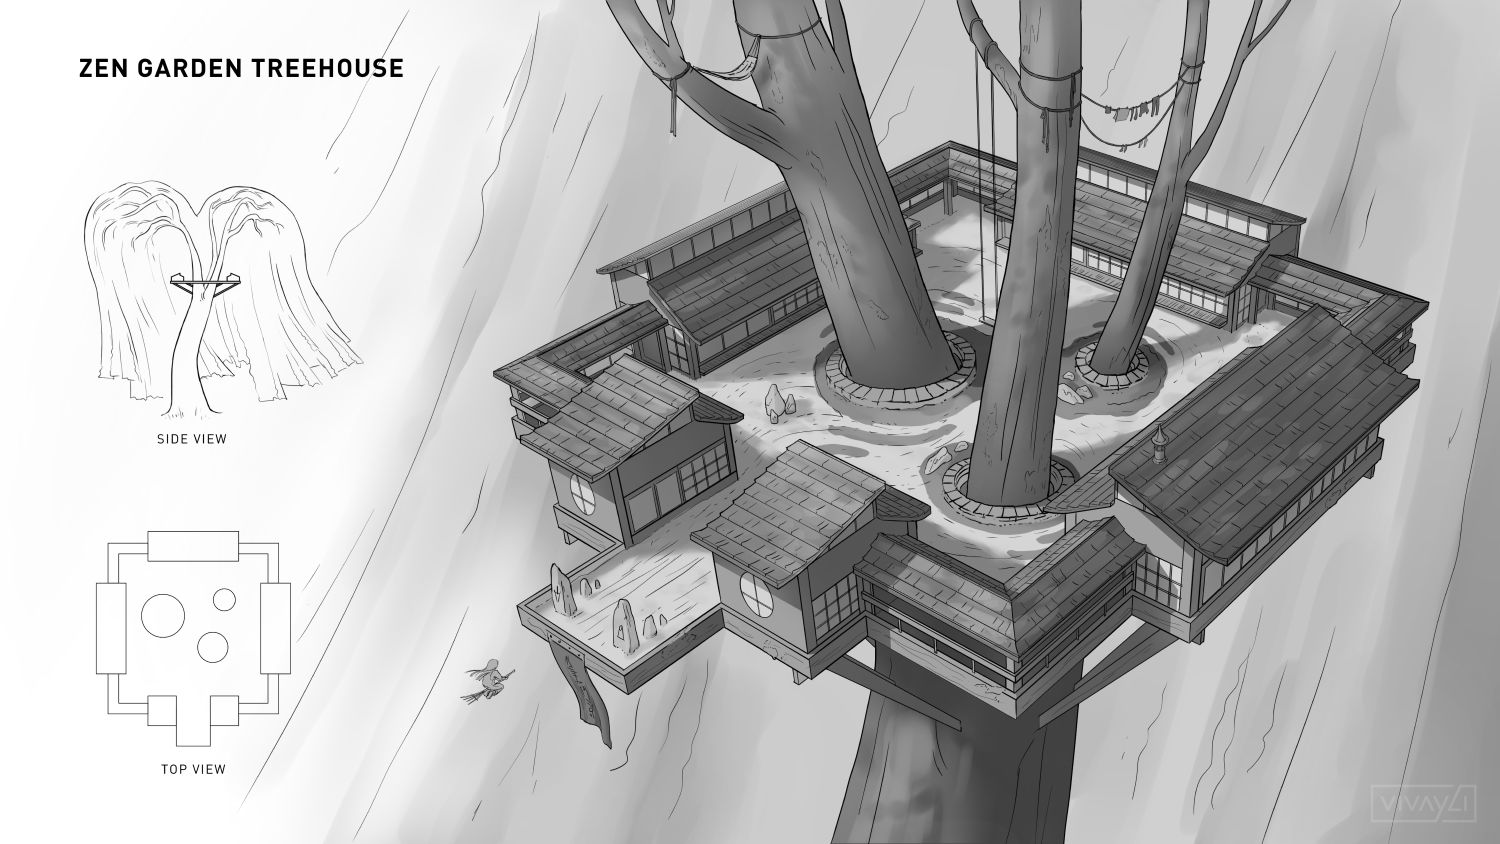 Zen garden treehouse environment design, done during my time at Vault 100